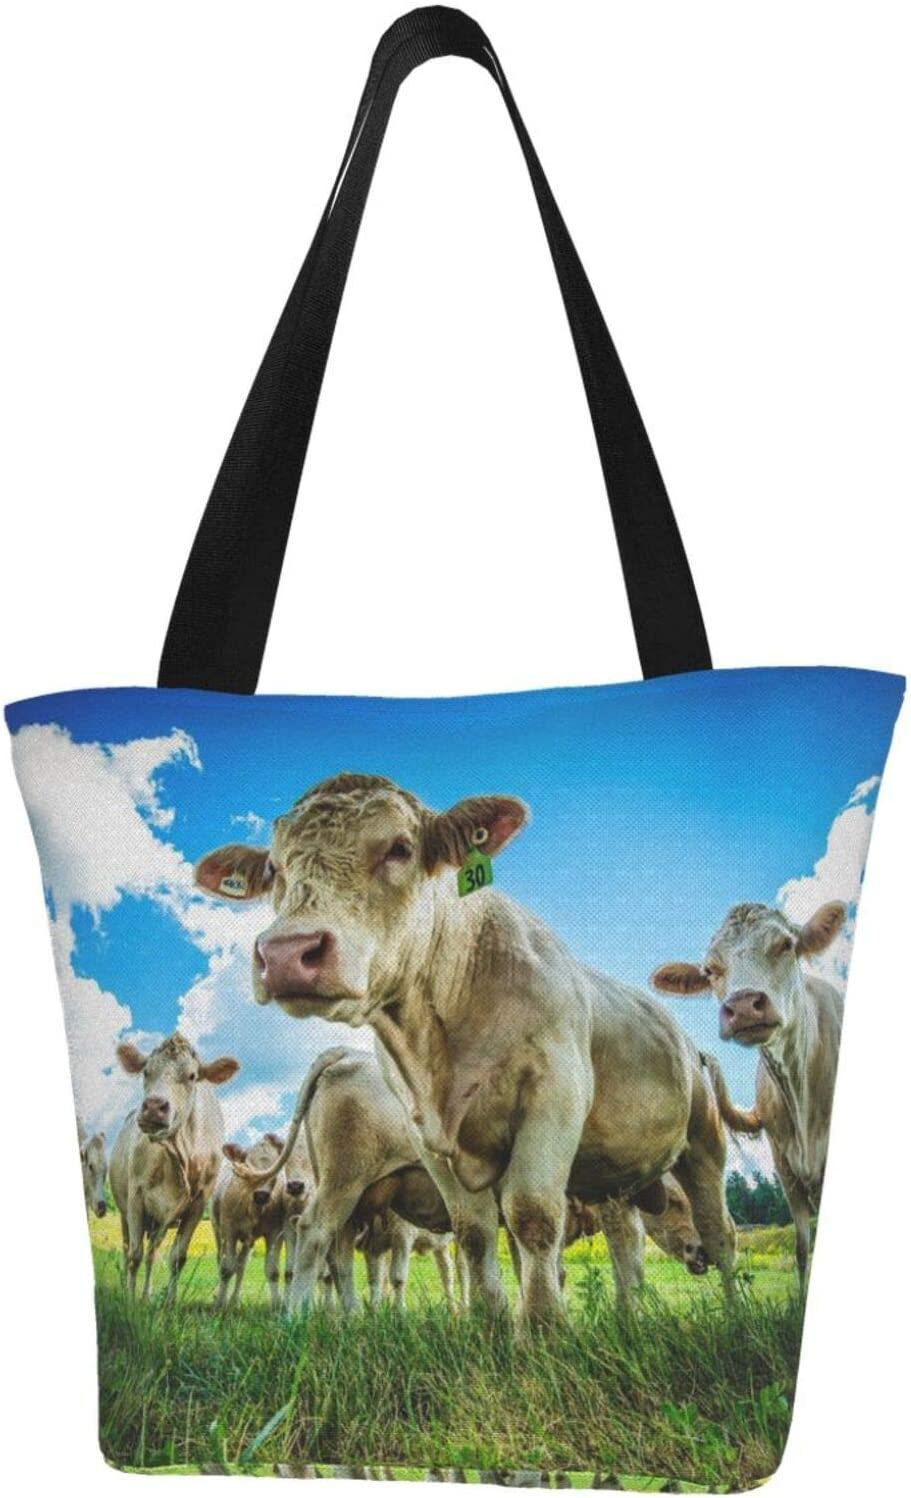 All stores are sold AKLID Nature Cow Extra Large Water Resistant Tote Over item handling ☆ Bag Canvas for